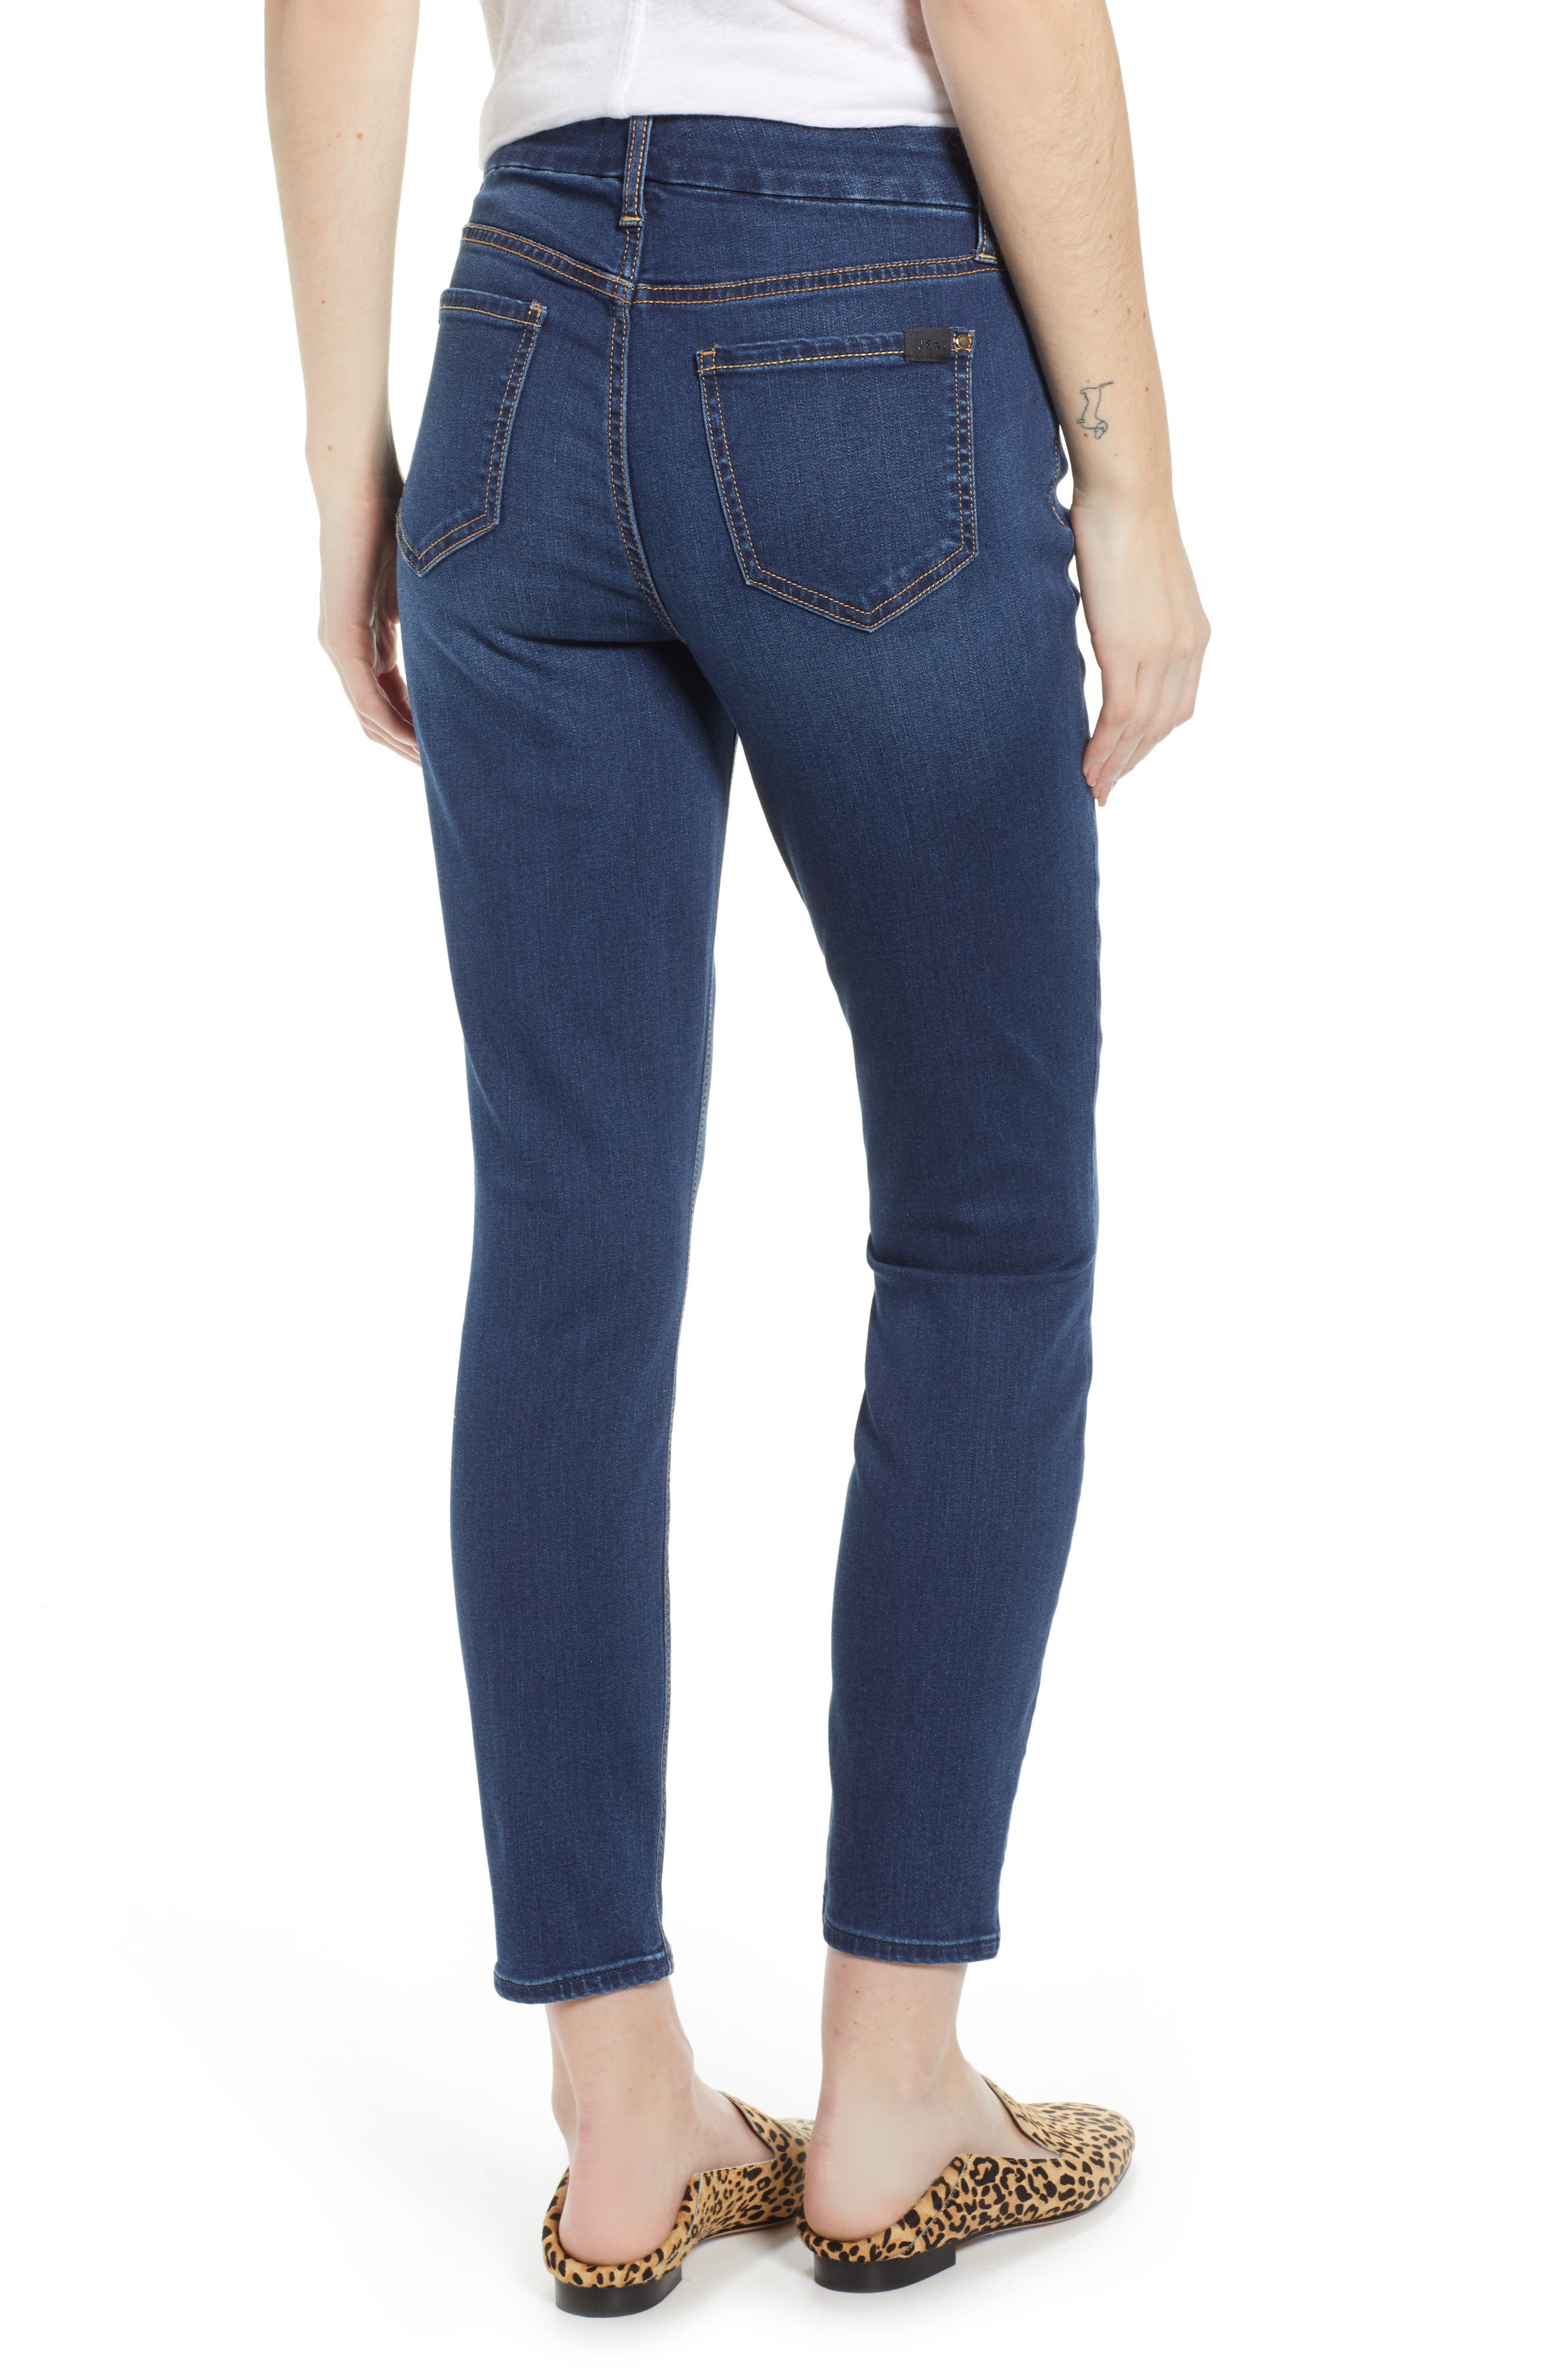 JEN7 BY 7 FOR ALL MANKIND, Ankle Skinny Jeans, Alternate thumbnail 2, color, 405